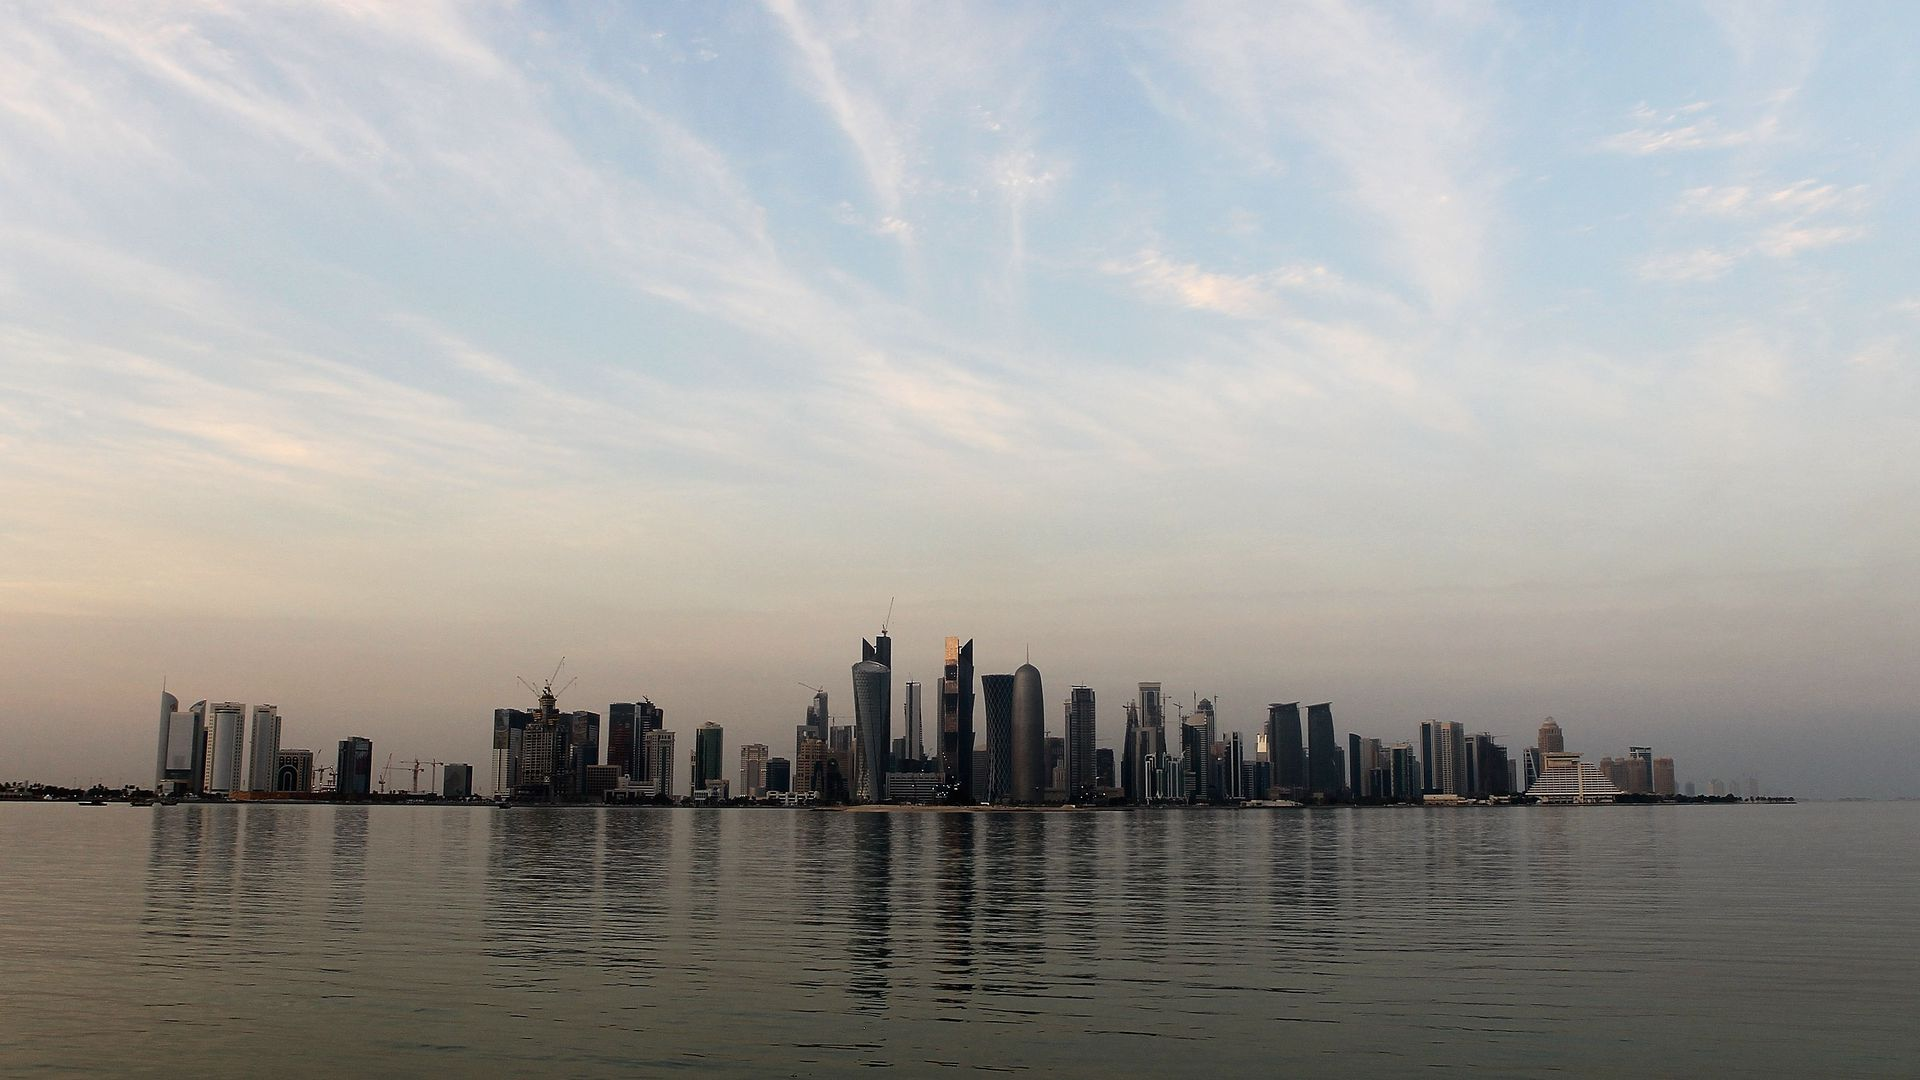 View of the skyline of the West Bay area in Doha is taken on January 4, 2011 in Doha, Qatar.